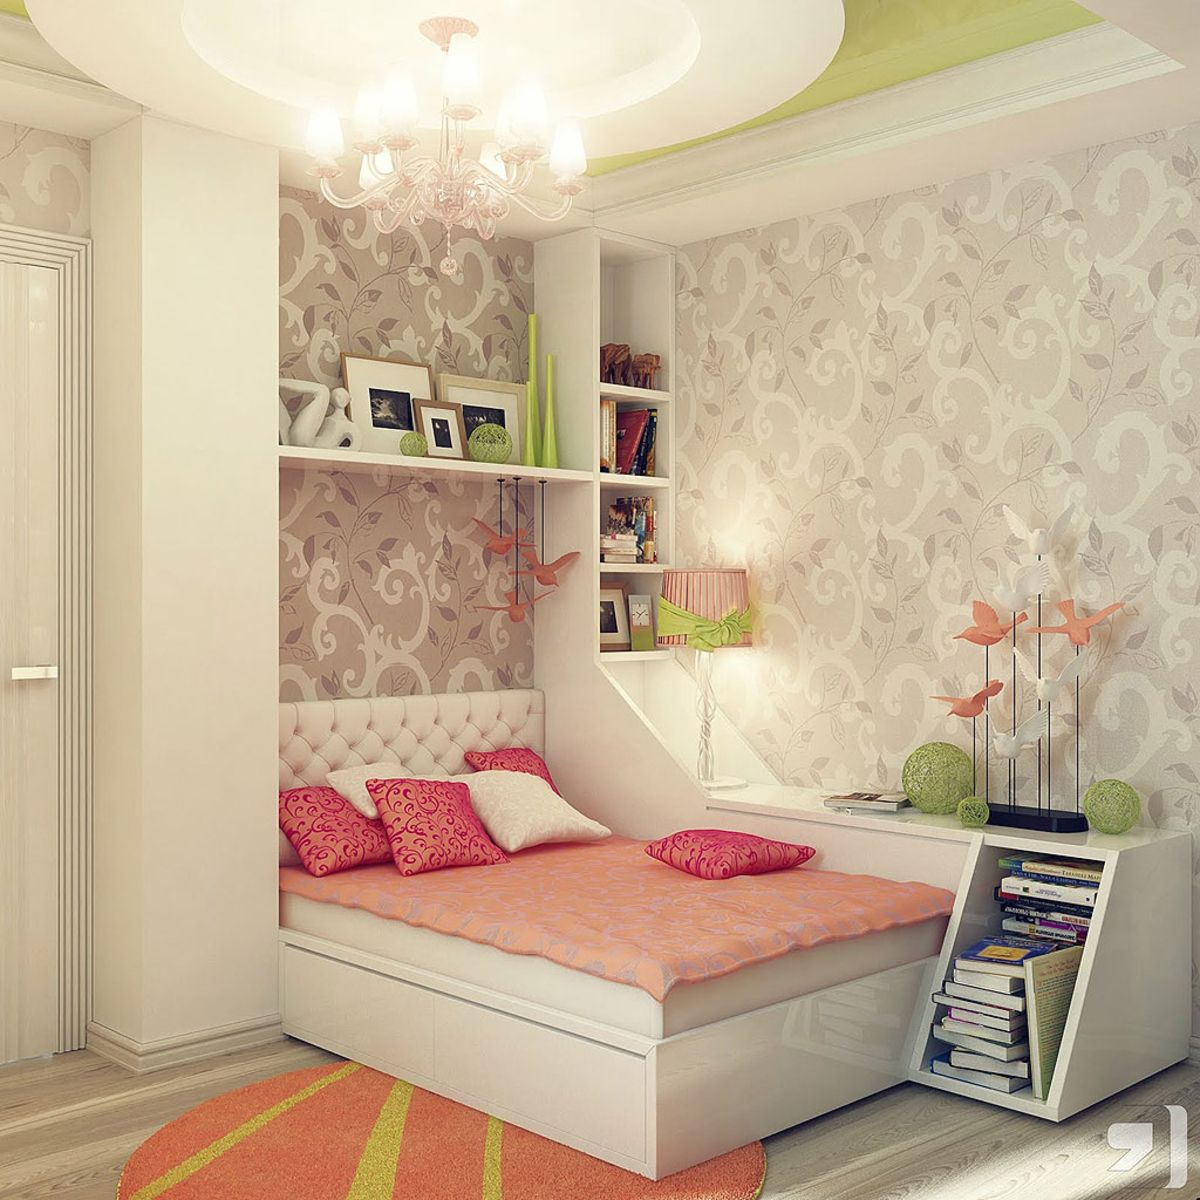 how to decorate a 10x10 bedroom - google search | teenage